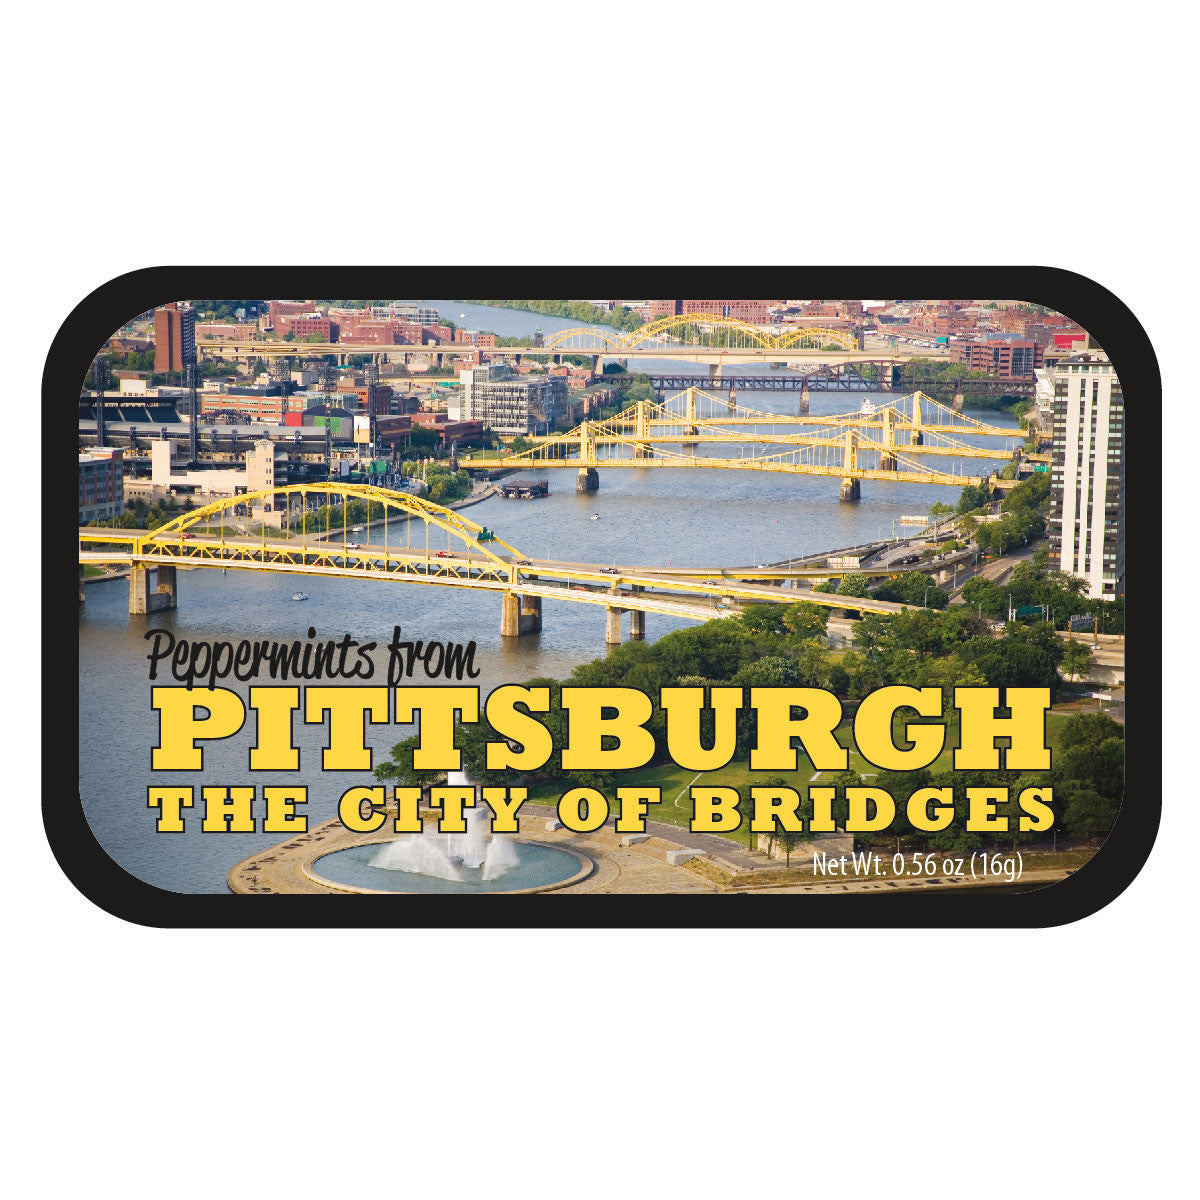 Pittsburg Bridges - 1033S